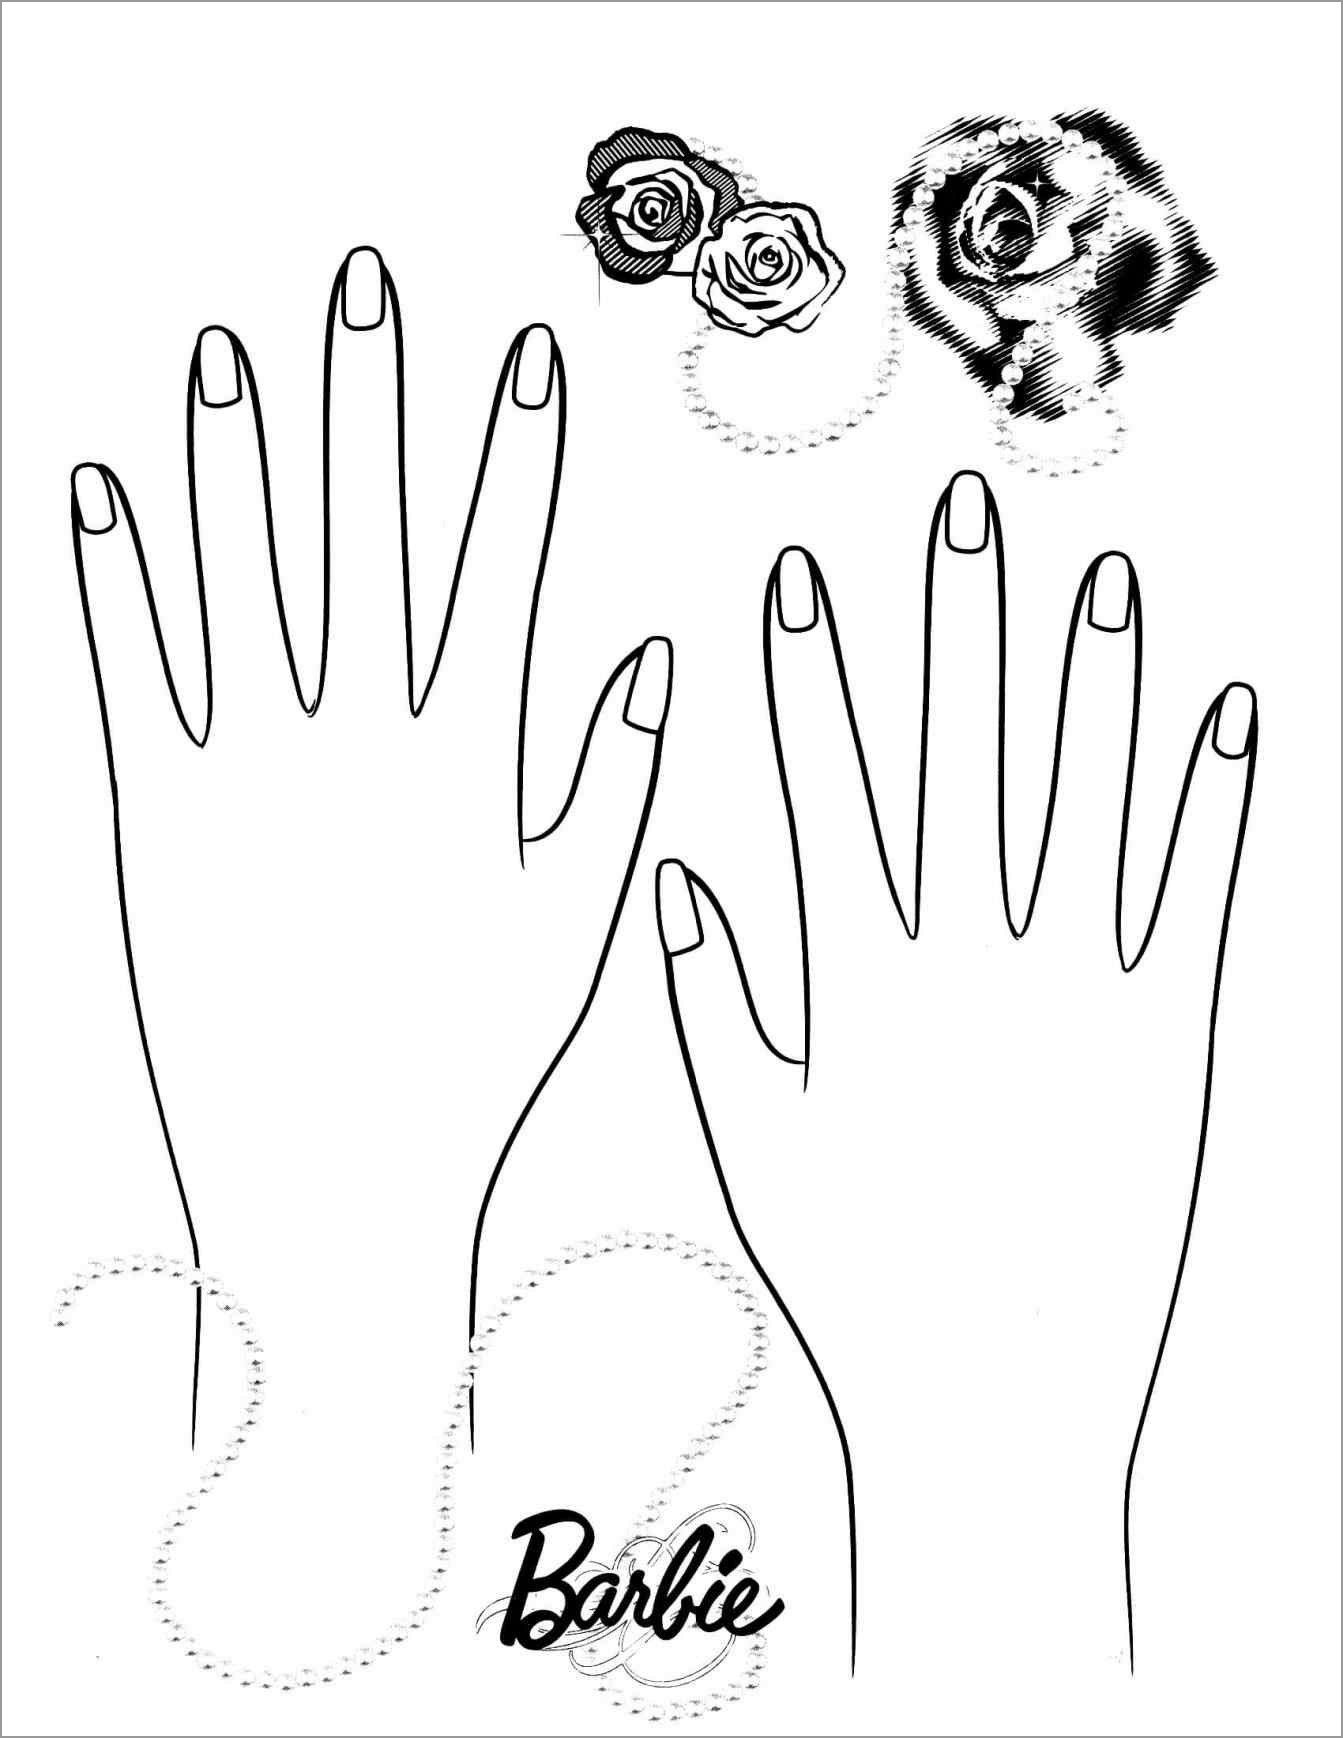 Barbie Nail Coloring Page Coloring Pages Barbie Growing Up Quotes